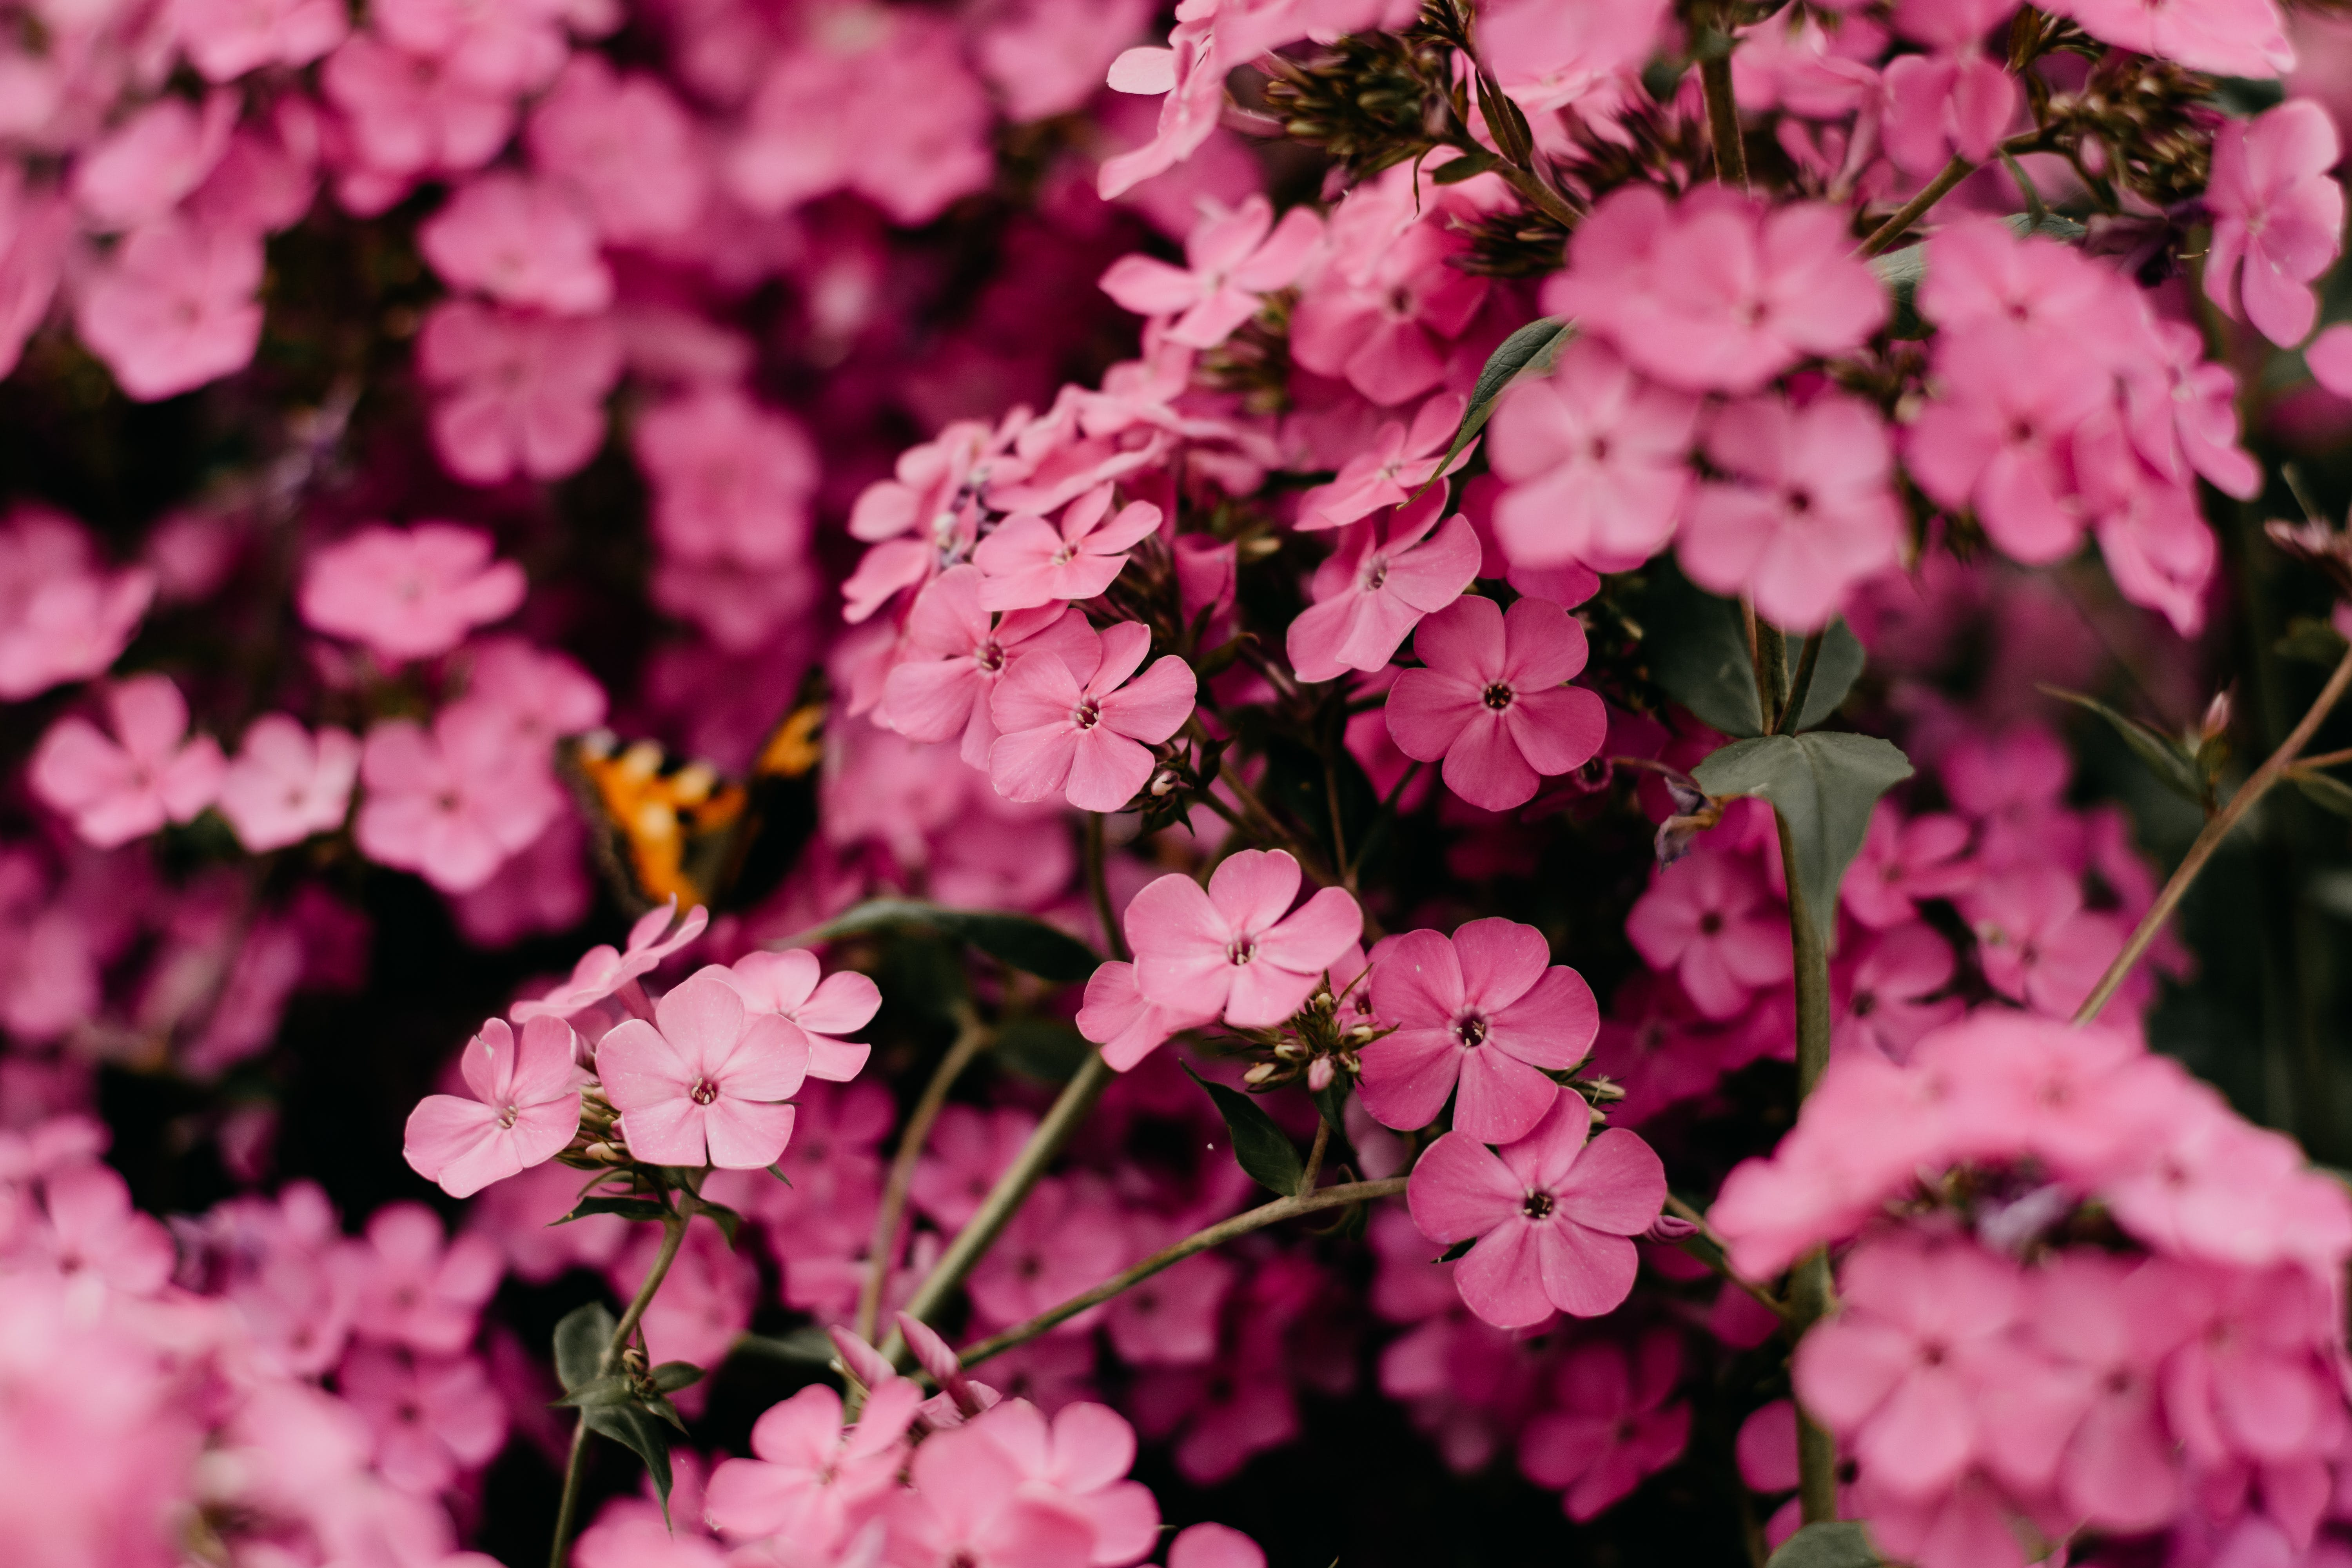 Selective Focus Photography of Pink Flowers